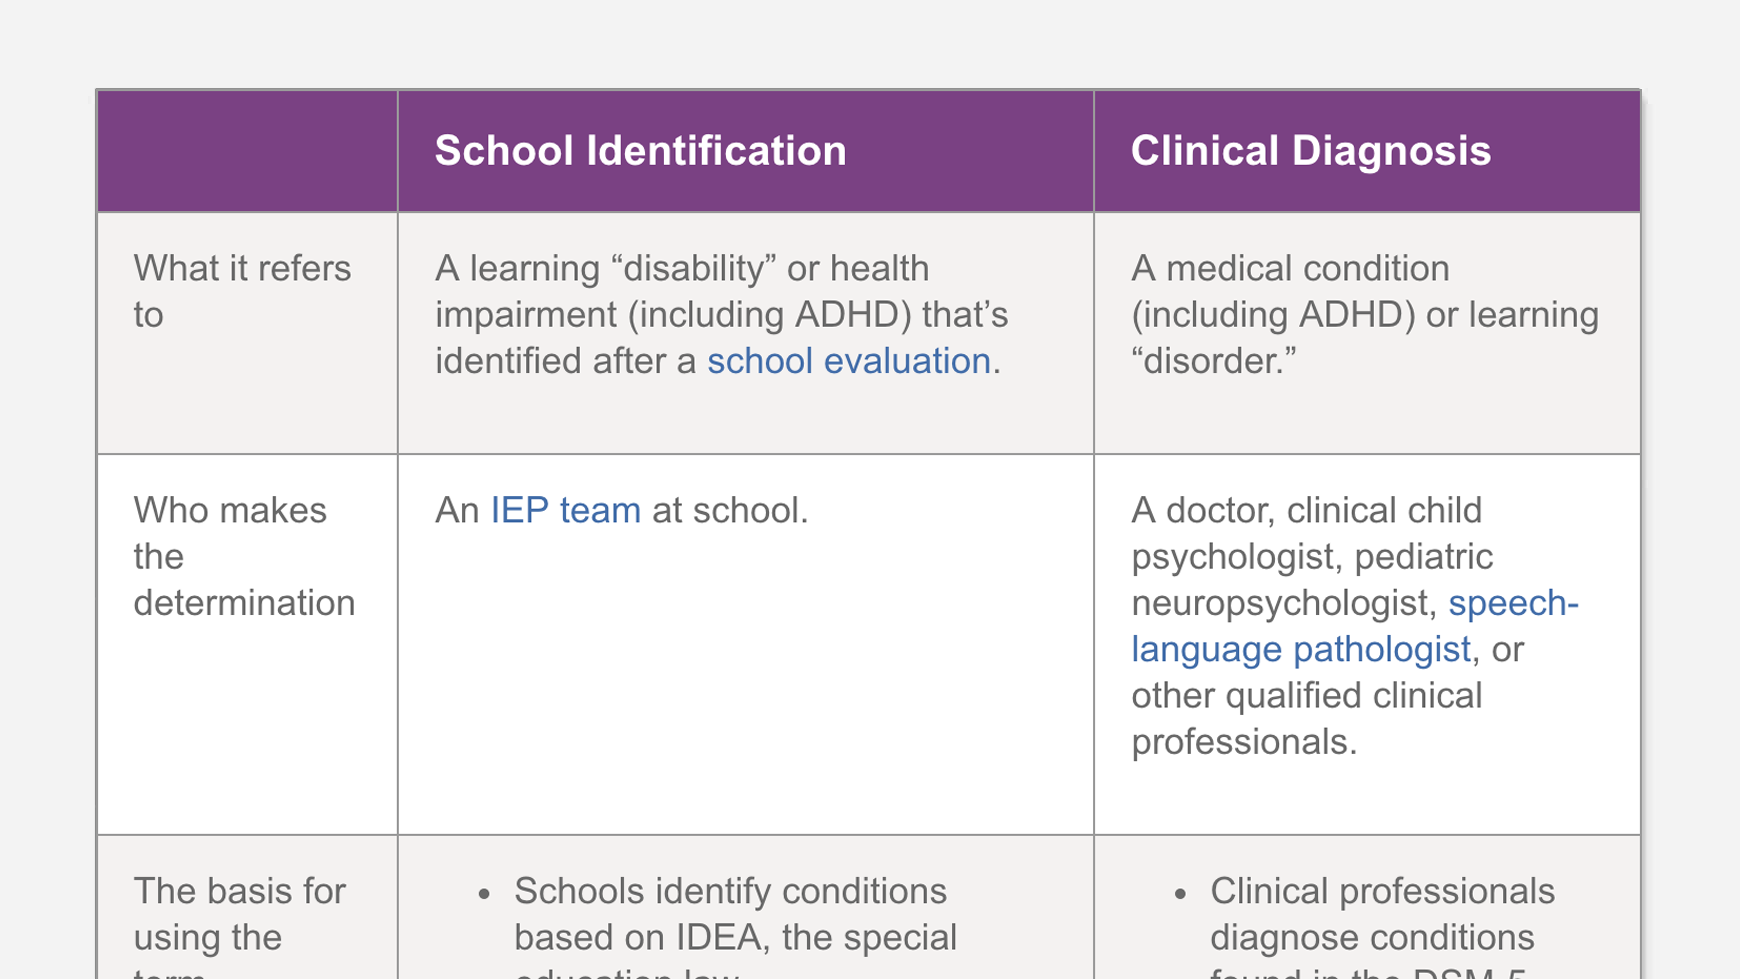 Detecting Learning Disabilities Webmd >> Diagnosis Vs Identification Of Learning And Attention Issues